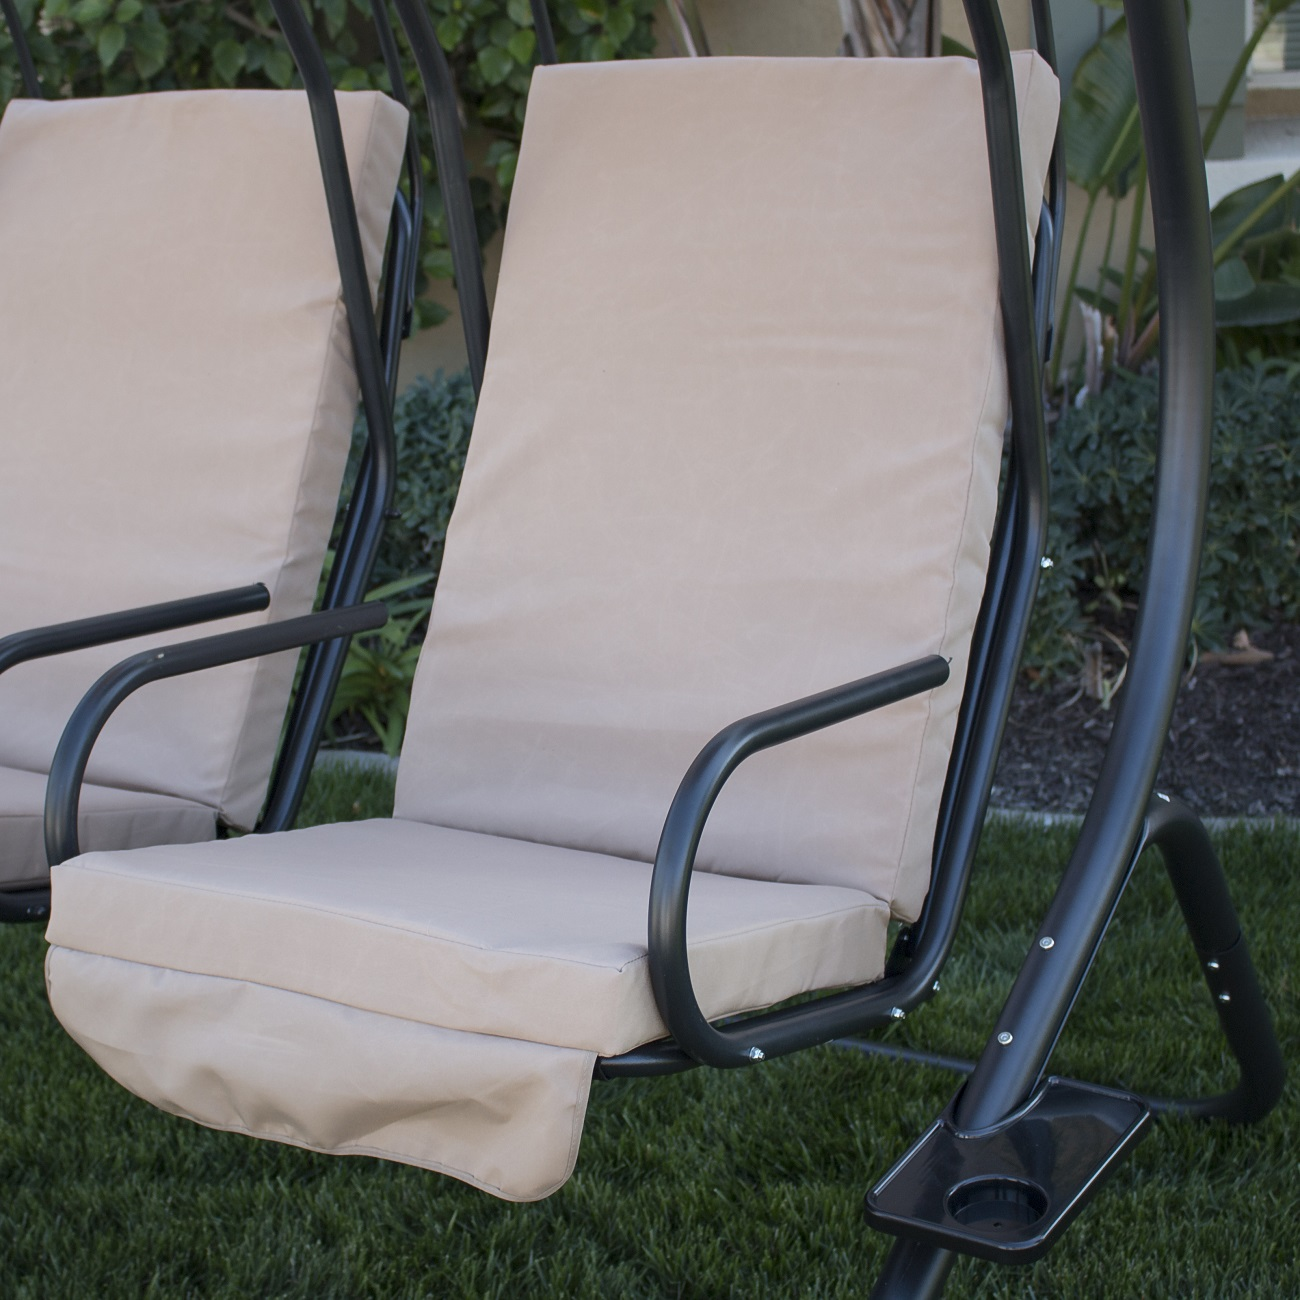 Double Seat Chair New Outdoor Double Swing Set 2 Person Canopy Patio